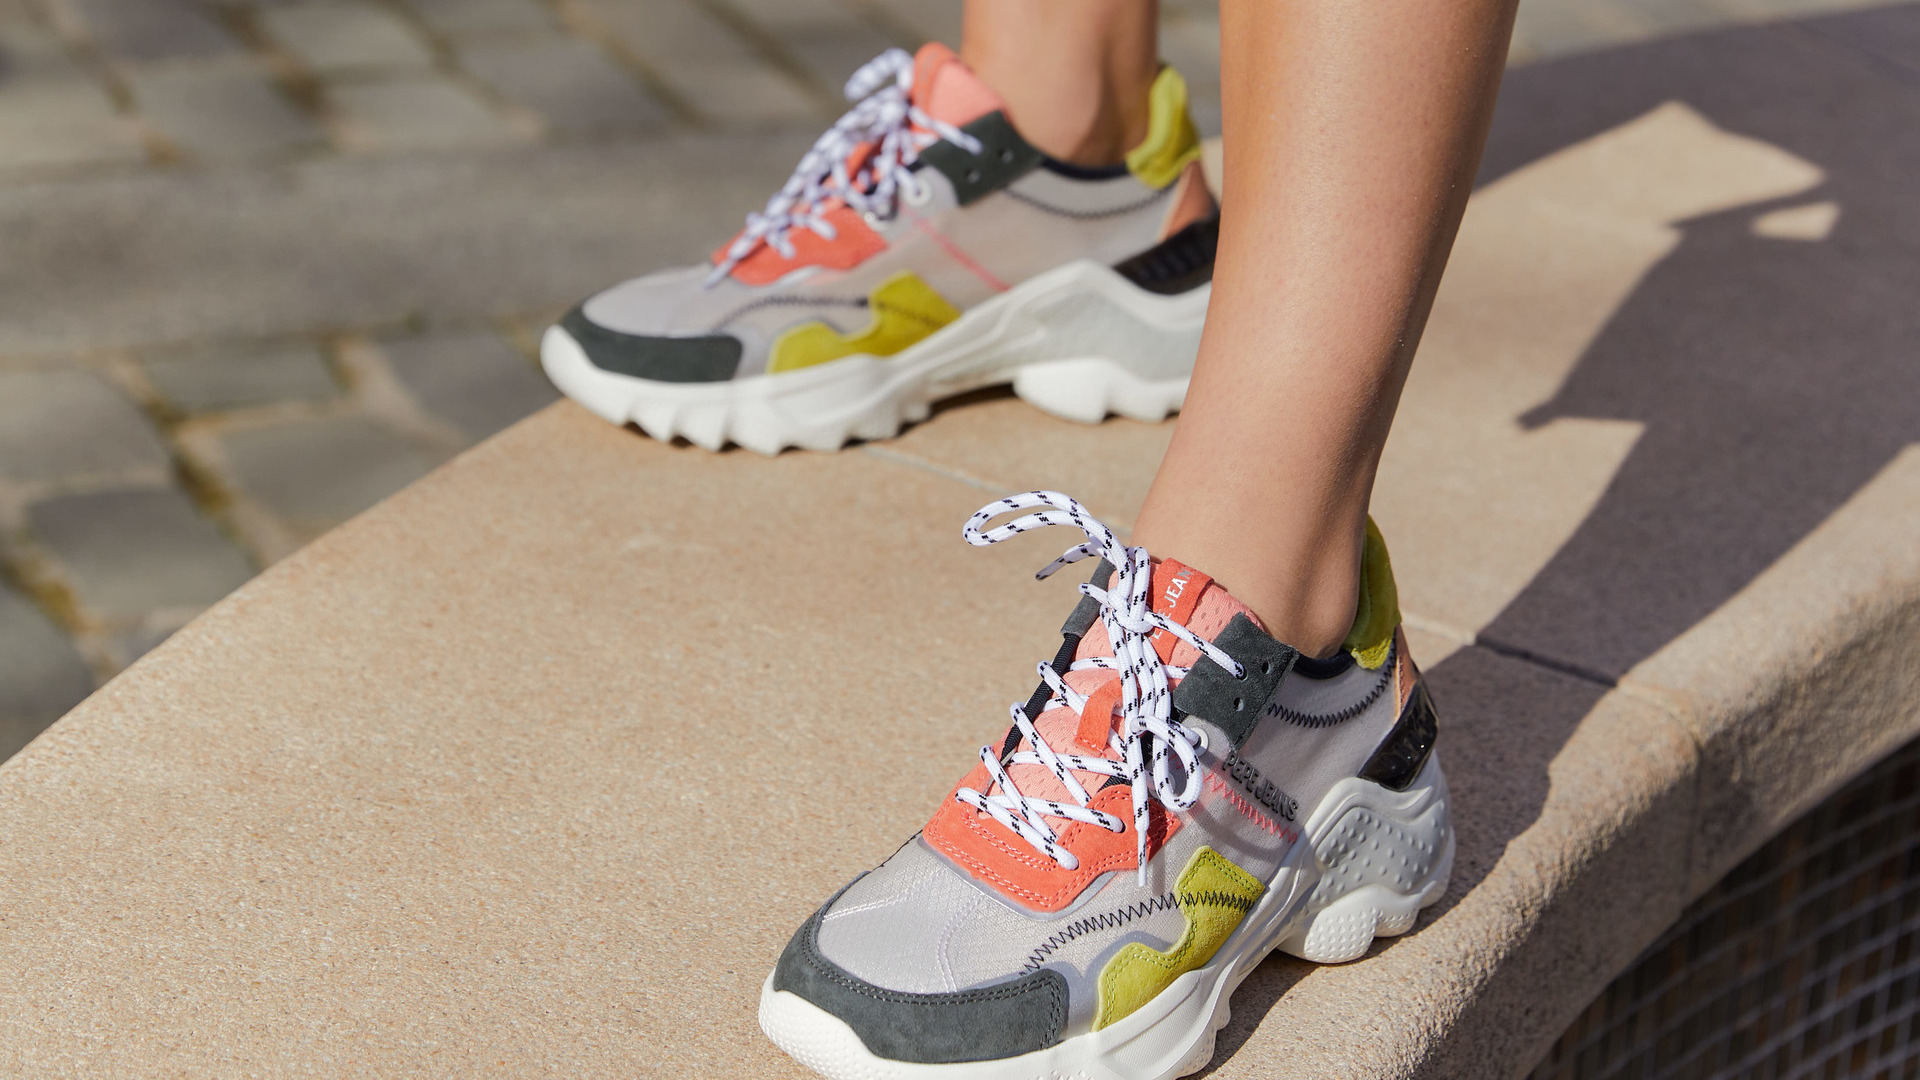 Woman with colorful sneakers from Bimba y Lola